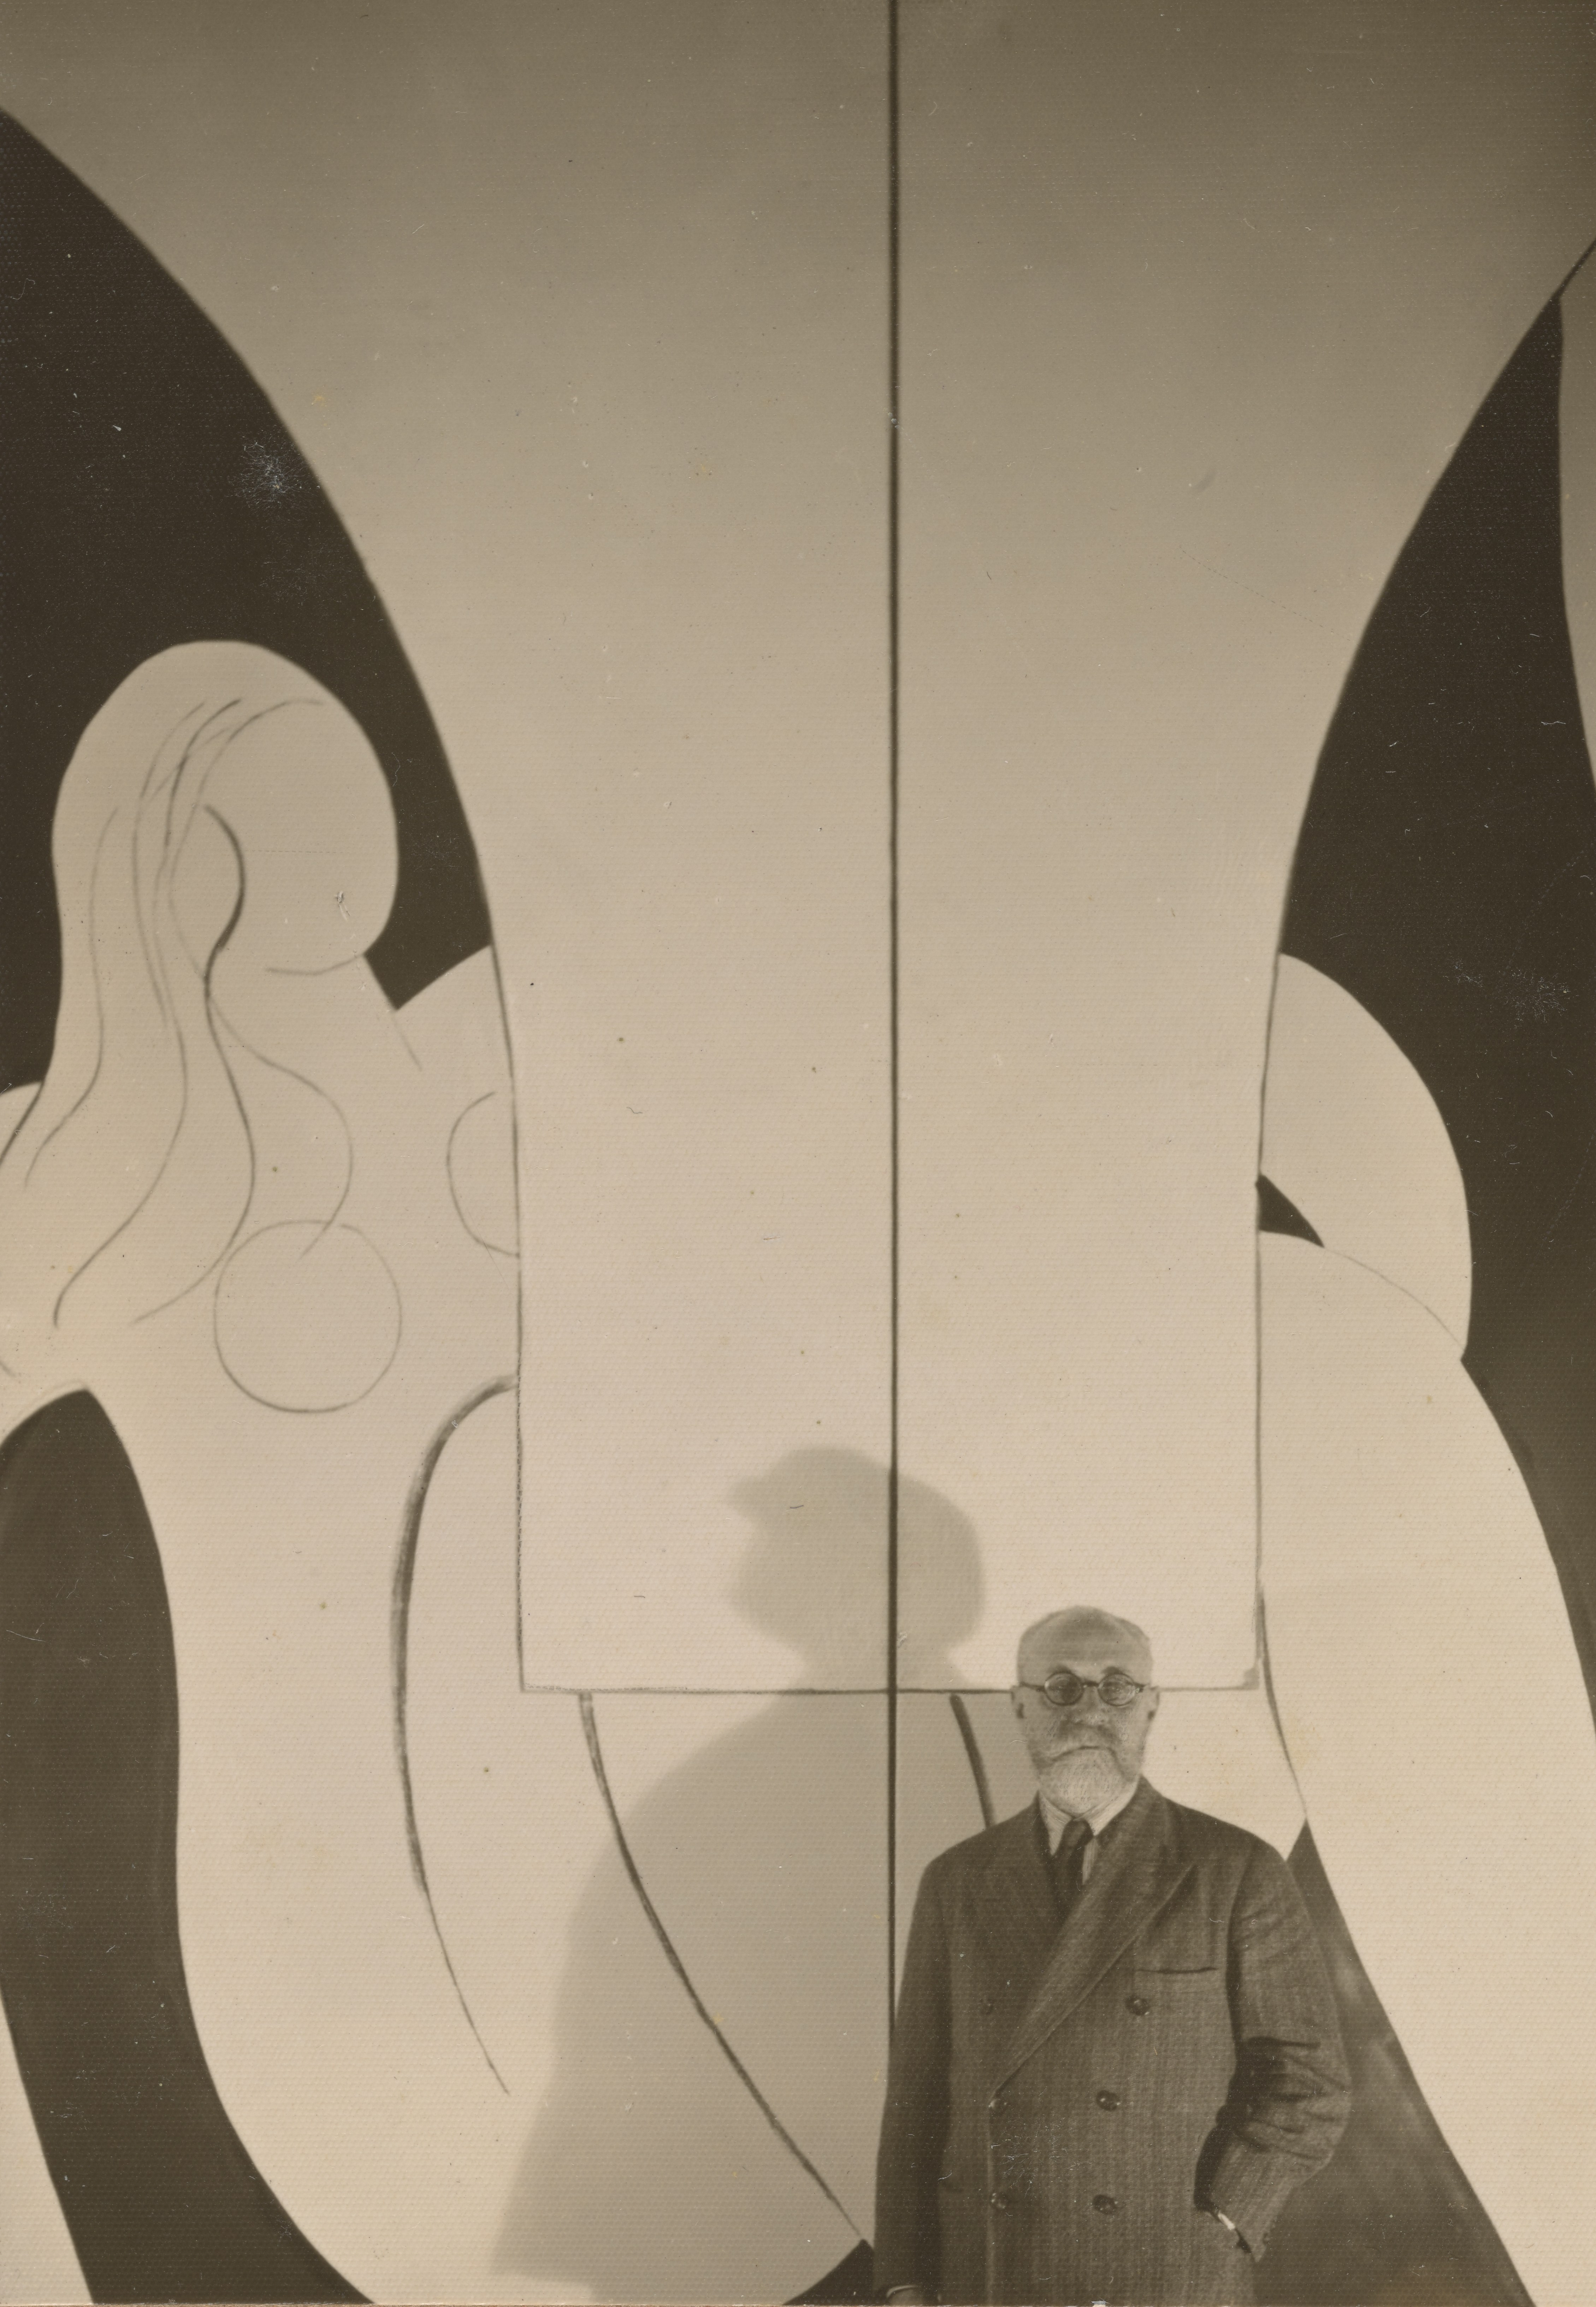 Matisse with his painting The Dance (1932–33) in Nice, France, 1933.